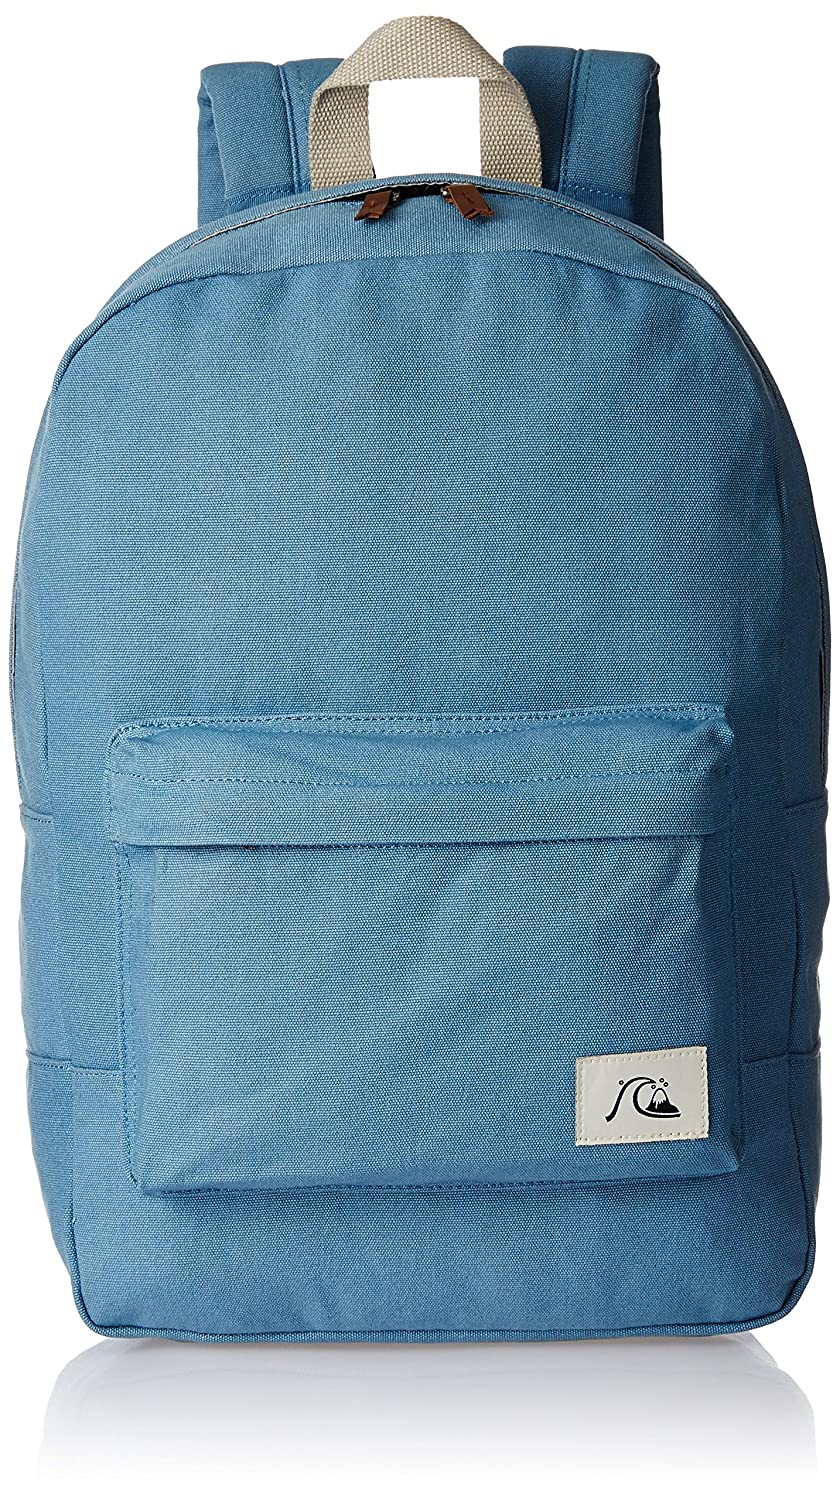 Quiksilver Night Track - Backpack - Mochila - Hombre - ONE SIZE - Azul: Amazon.es: Deportes y aire libre